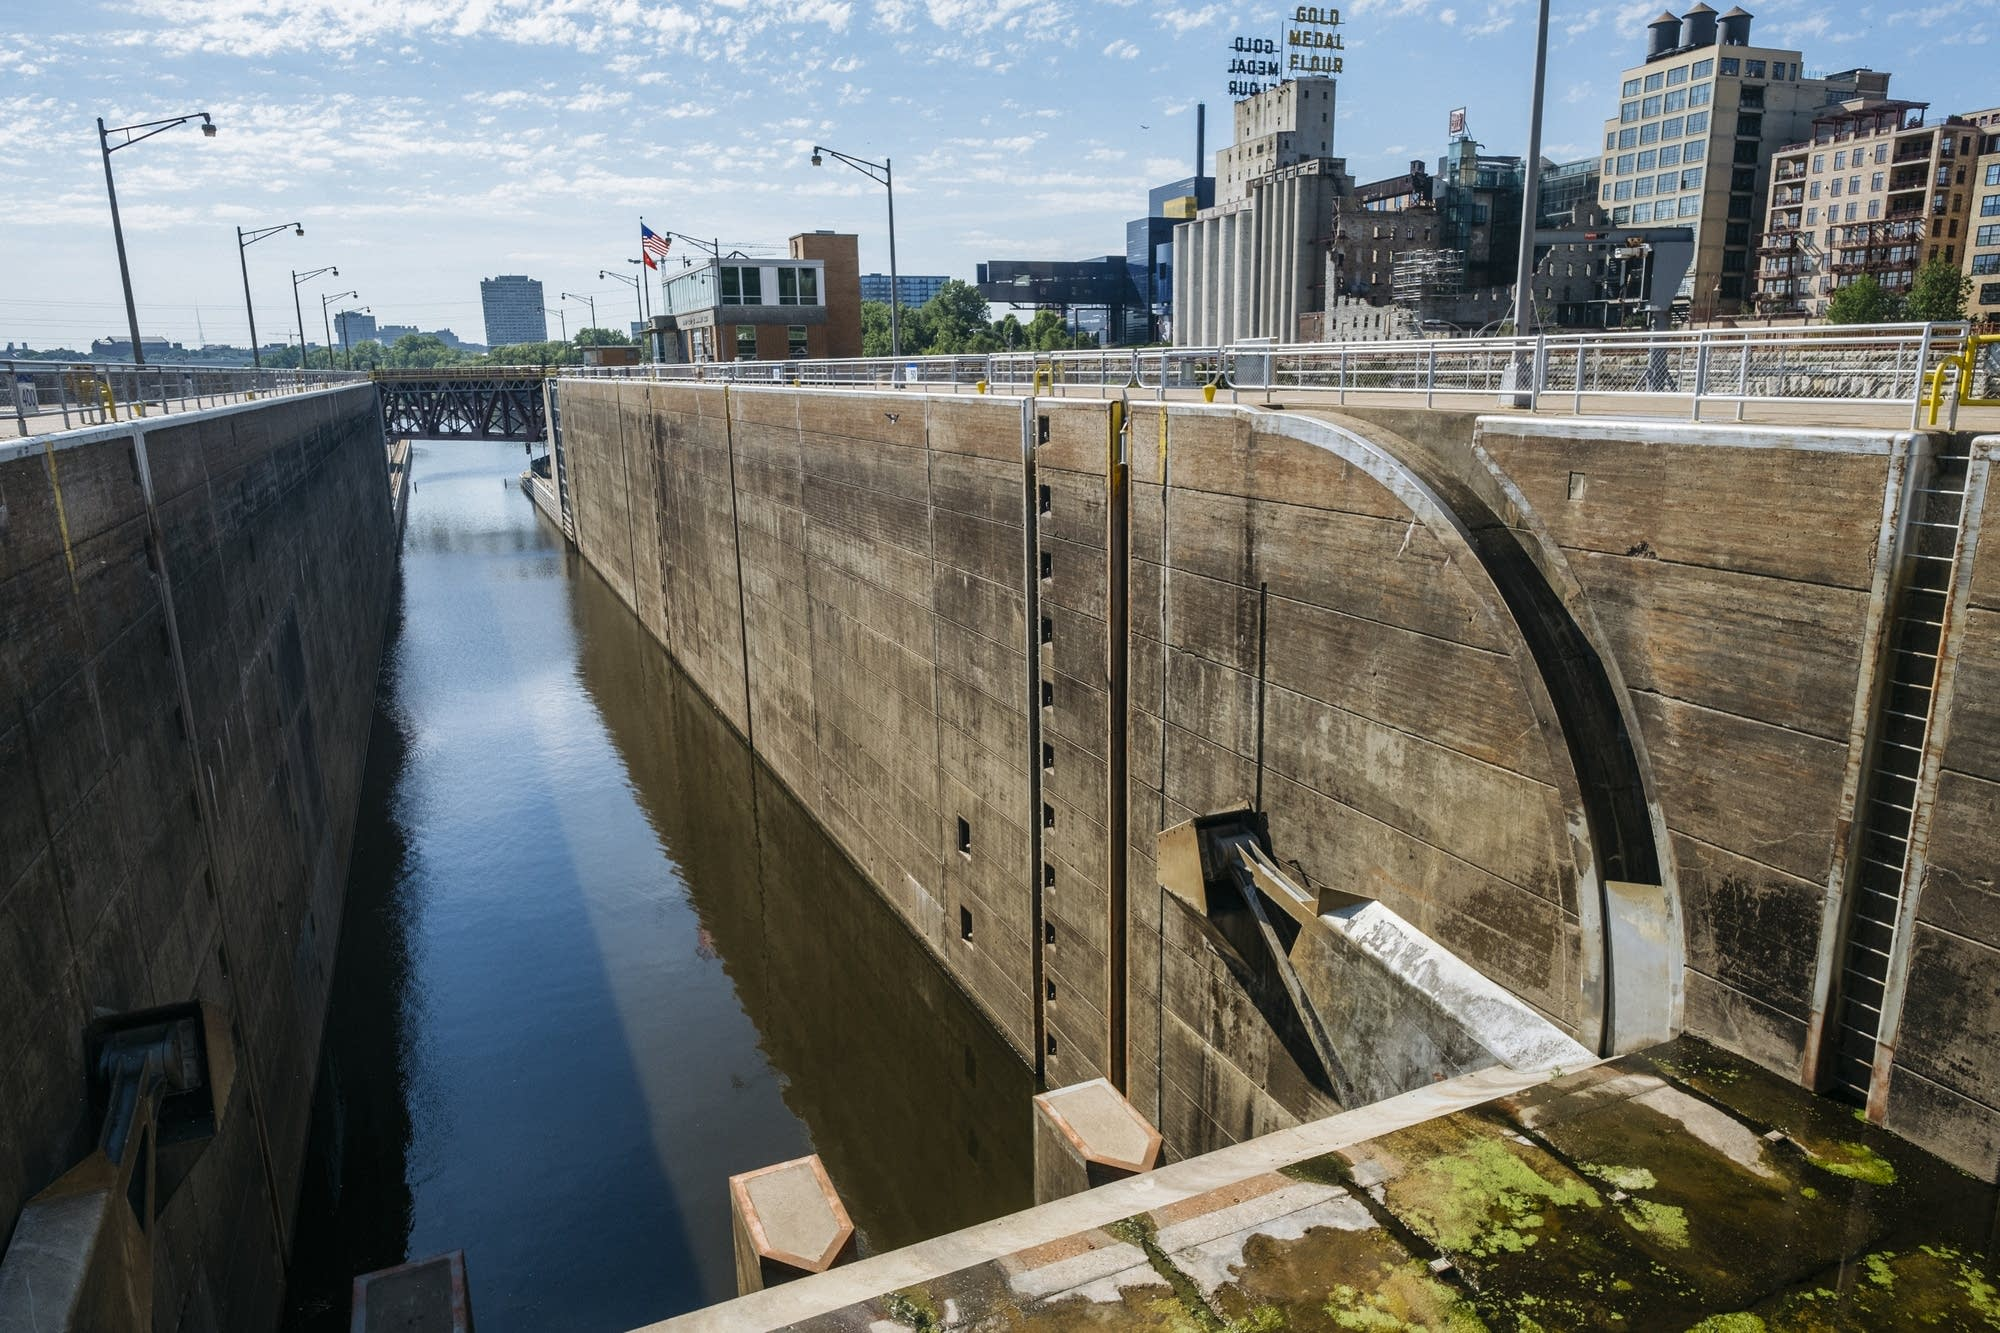 The St. Anthony Falls Lock sits empty.